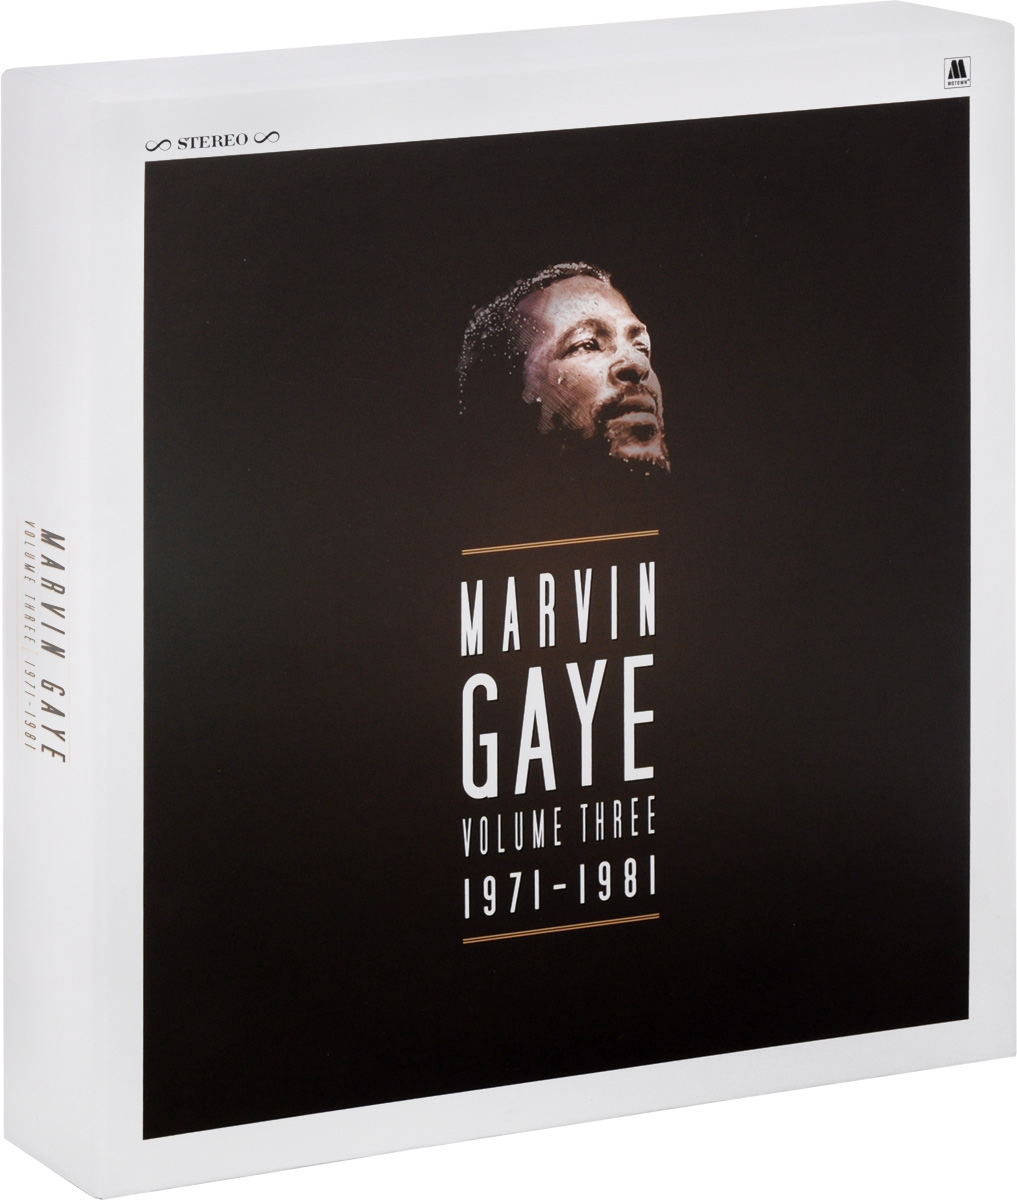 Марвин Гэй,Дайана Росс Marvin Gaye. Volume 3. 1971-1981 (8 LP) binful 6 7 9 9 7 soft tablet case cover for ipad mini 2 3 4 air 1 universal liner sleeve tablets zipper pouch bag